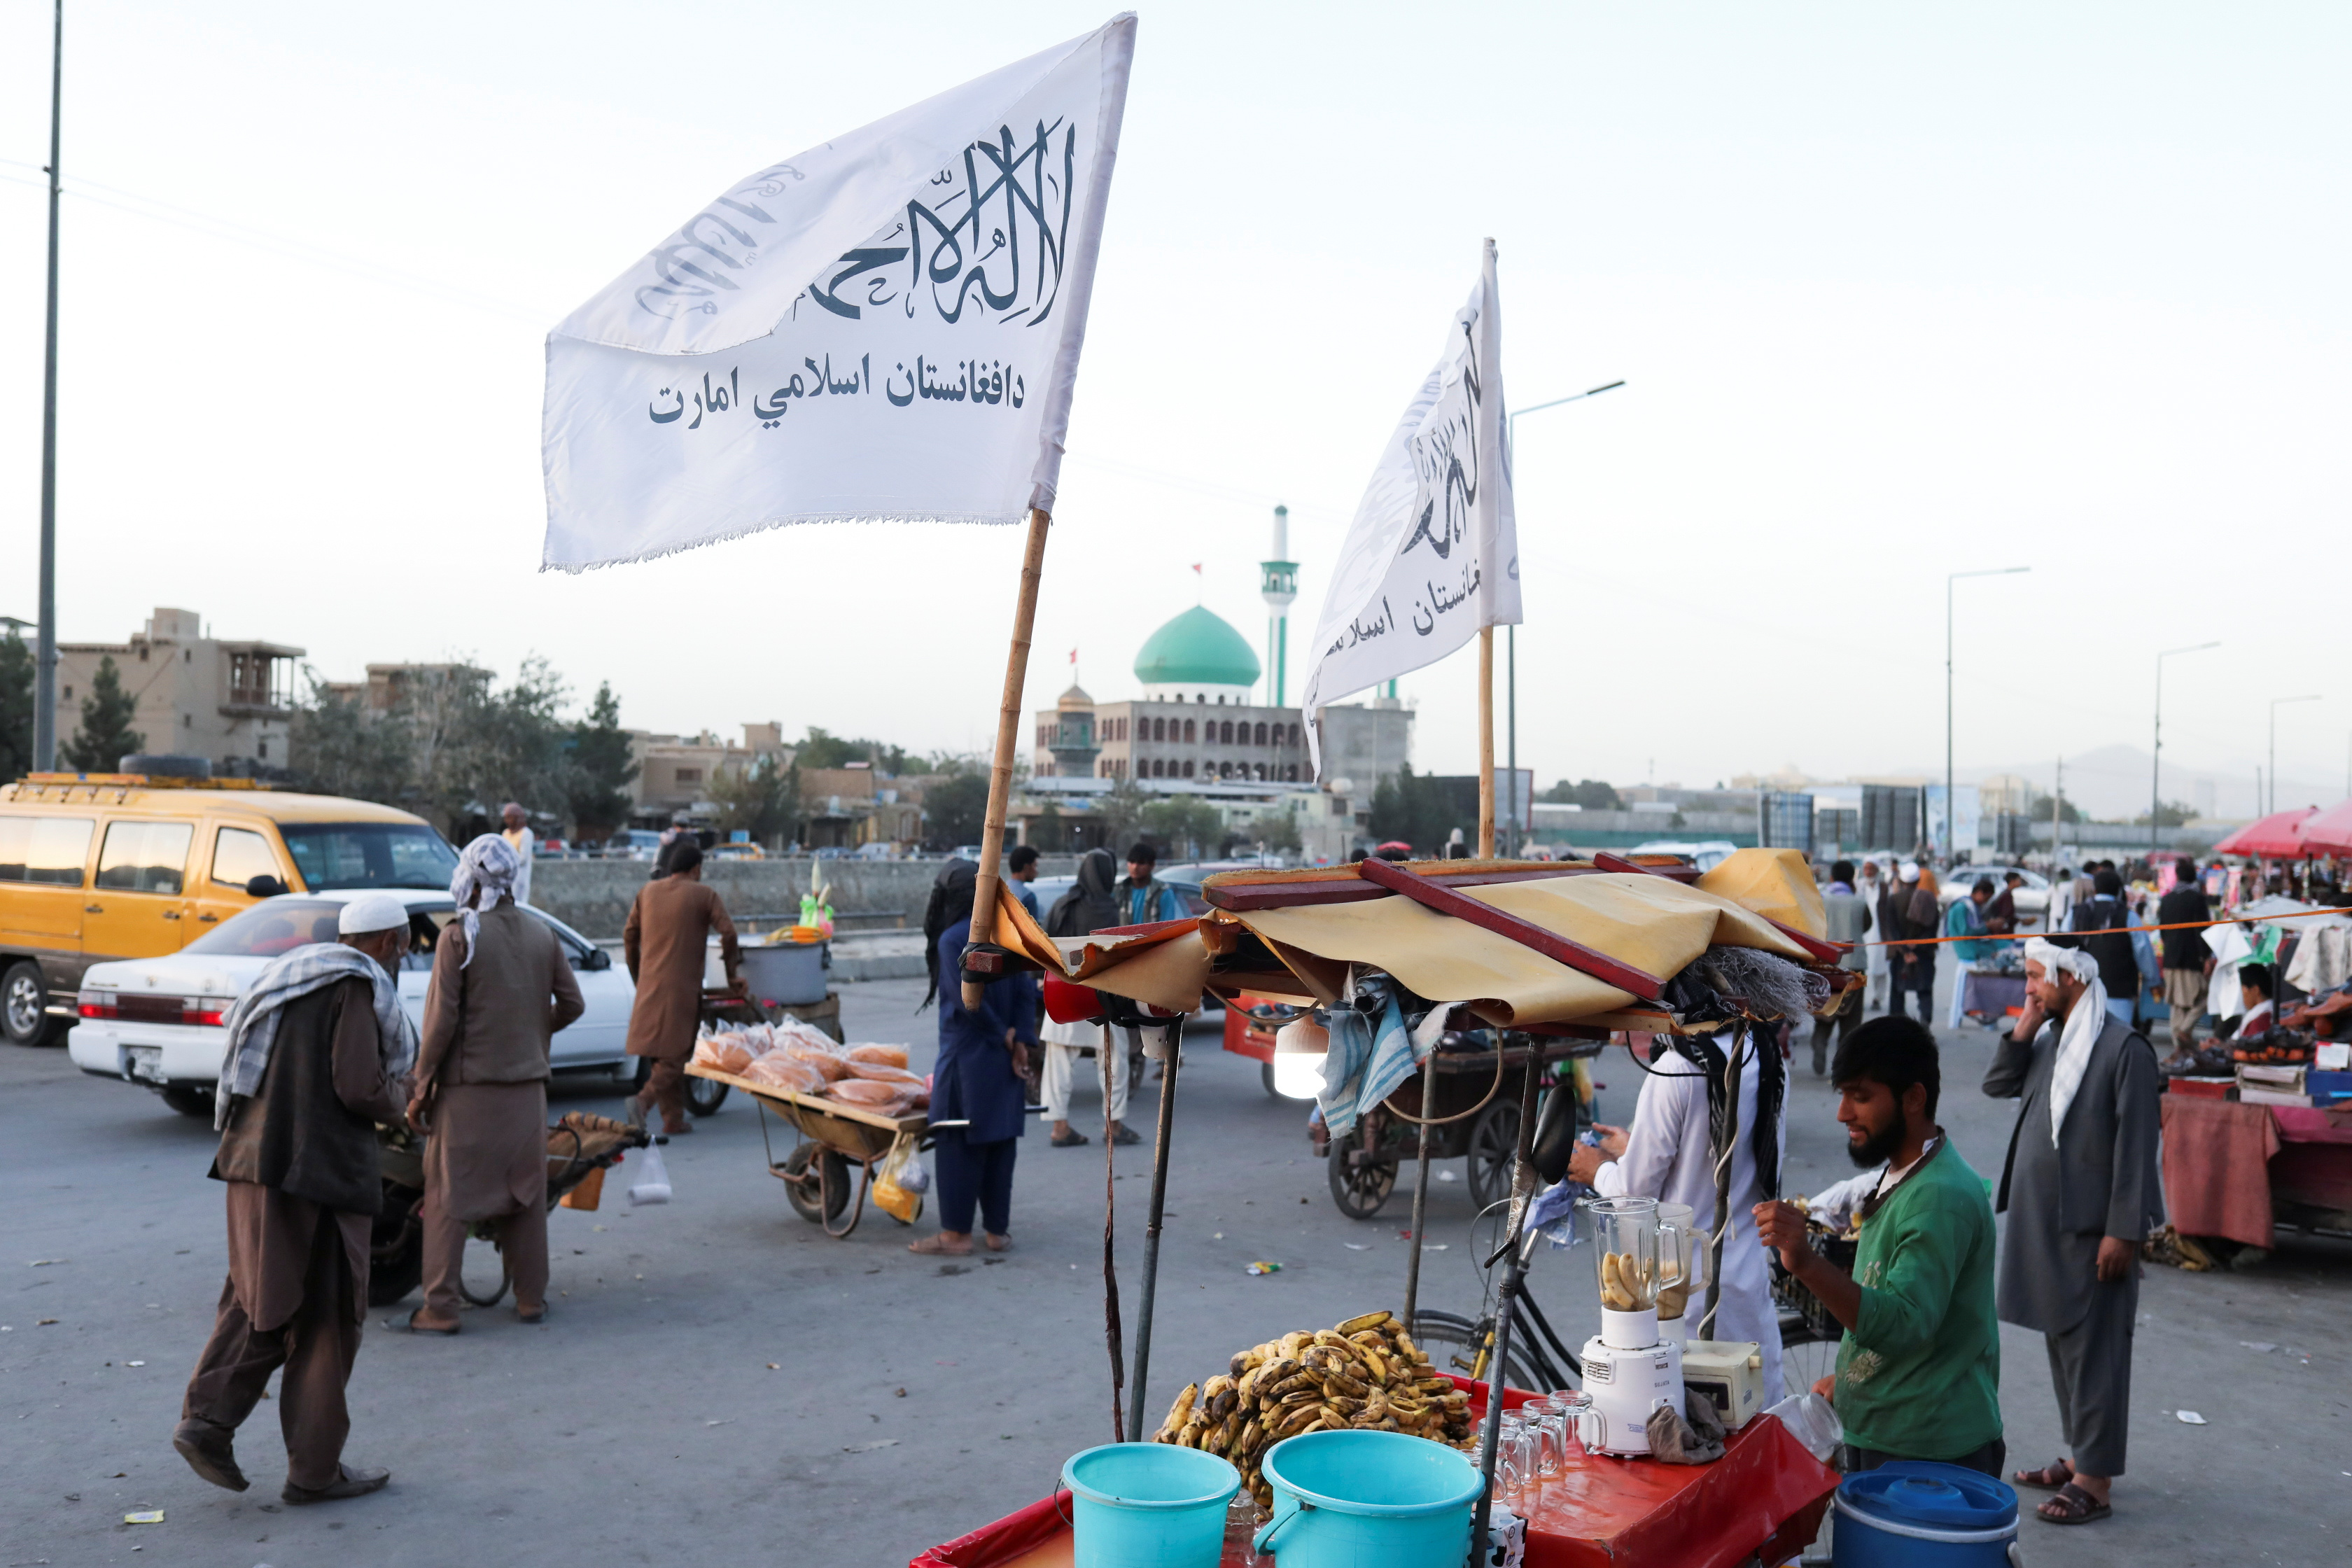 The Taliban flags are seen on a street in Kabul, Afghanistan, September 16, 2021. Picture taken on September 16, 2021. WANA (West Asia News Agency) via REUTERS ATTENTION EDITORS - THIS PICTURE WAS PROVIDED BY A THIRD PARTY